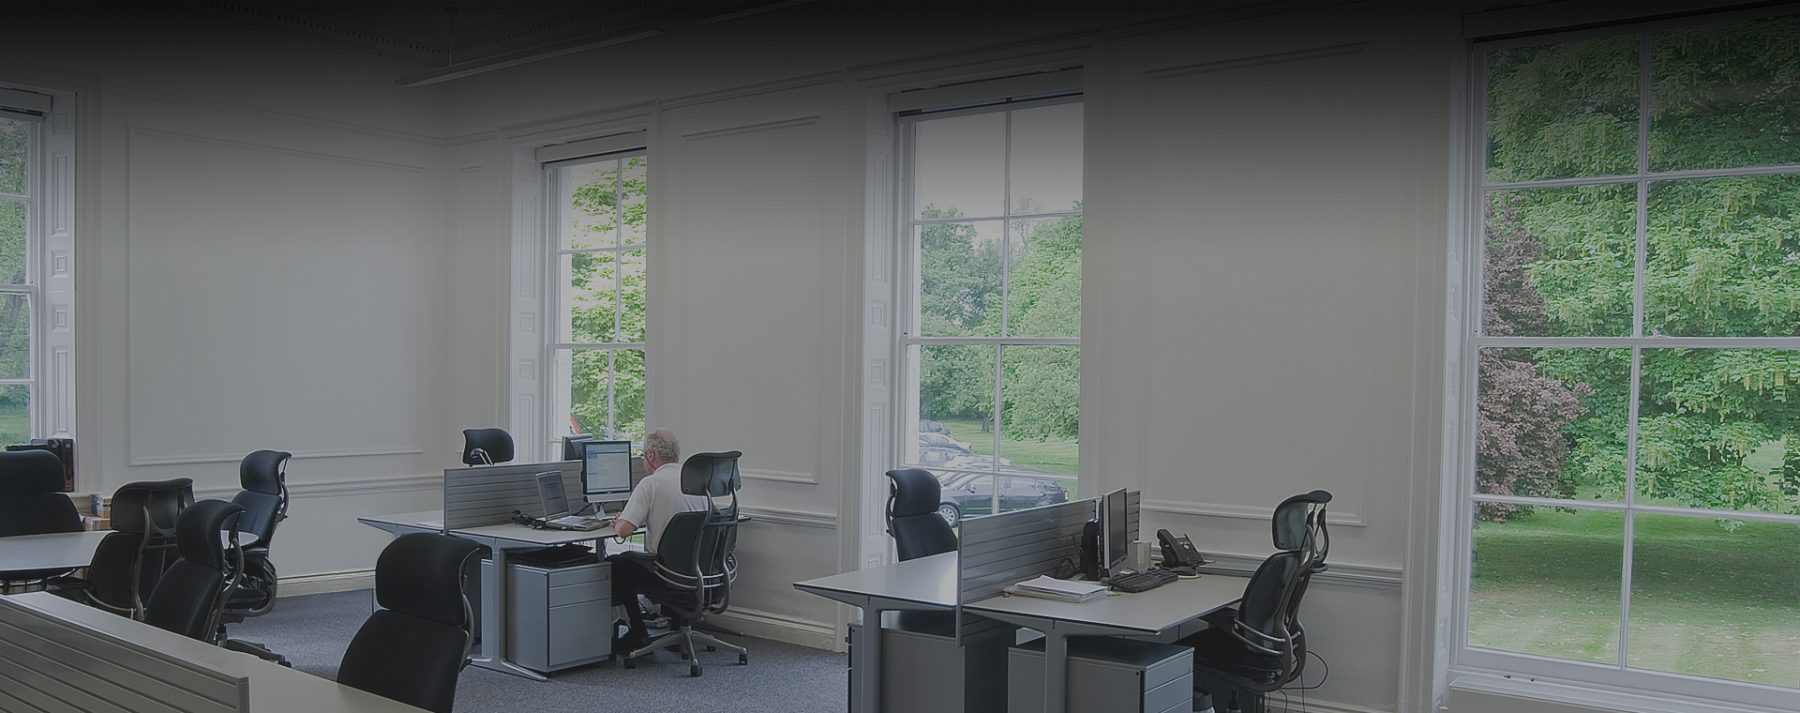 Halcyon Offices, Leatherhead, Thorncroft Manor, 360 degree green views, Serviced & Virtual Office Services